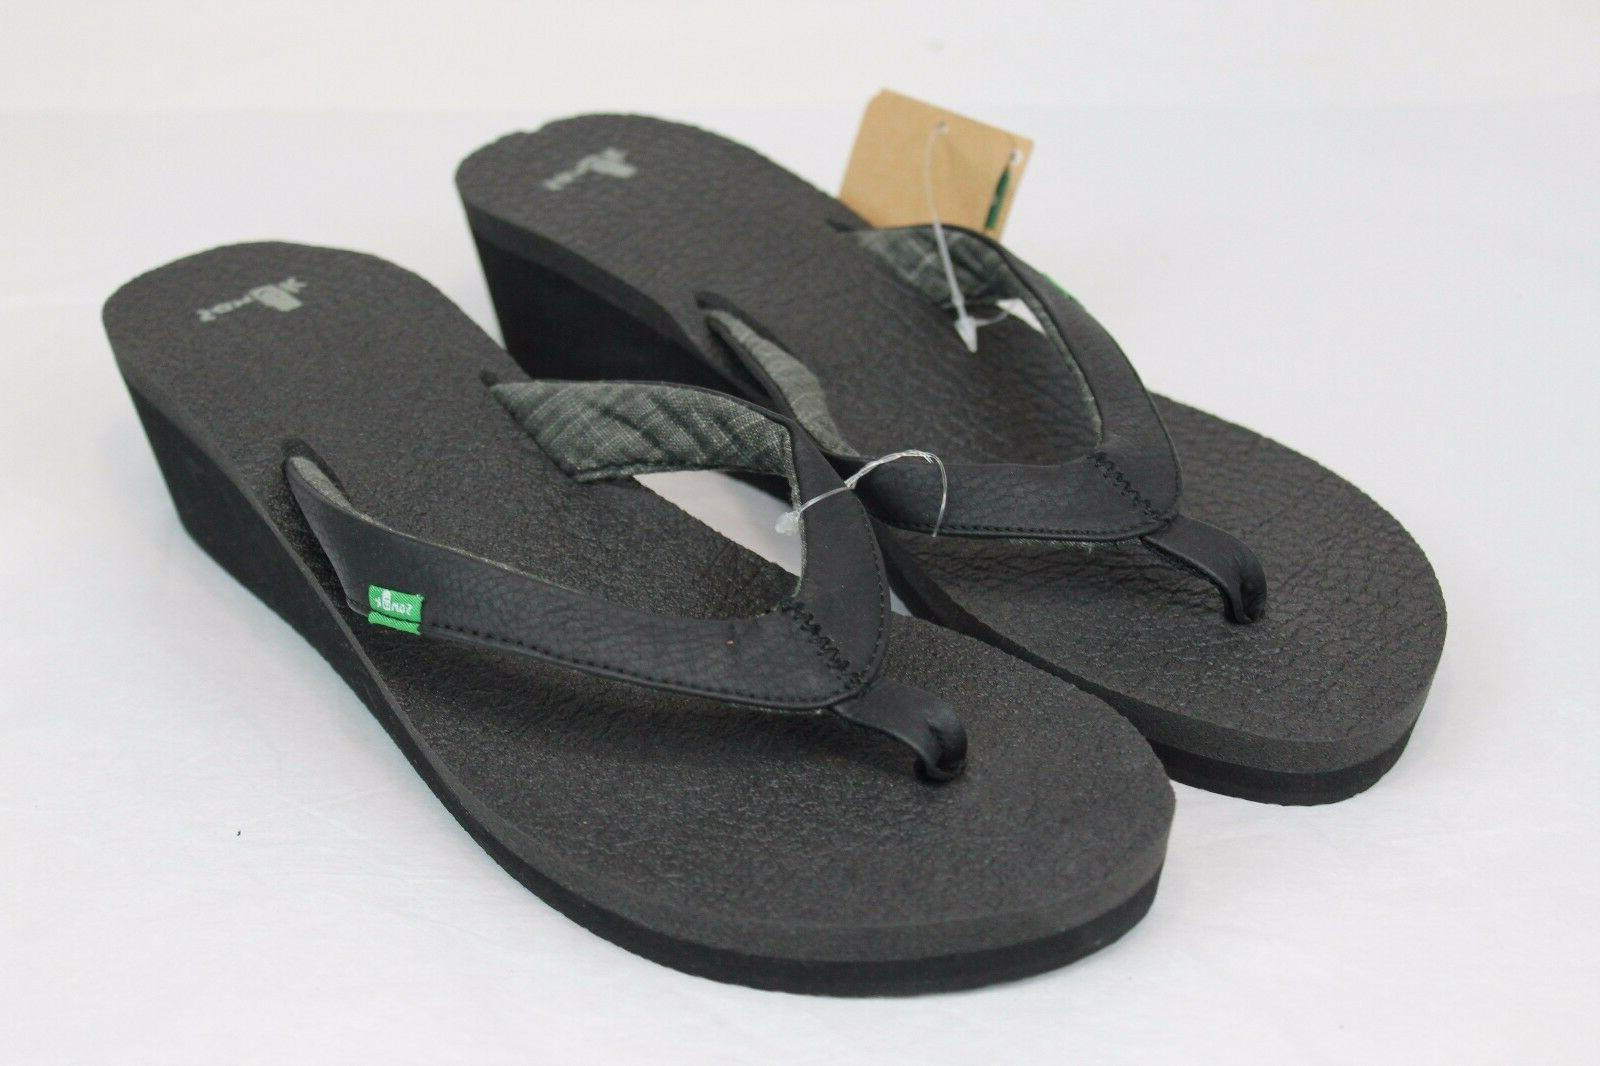 SANUK YOGA MAT WEDGE FLIP FLOP SANDALS BLACK WOMENS SIZE 9 U